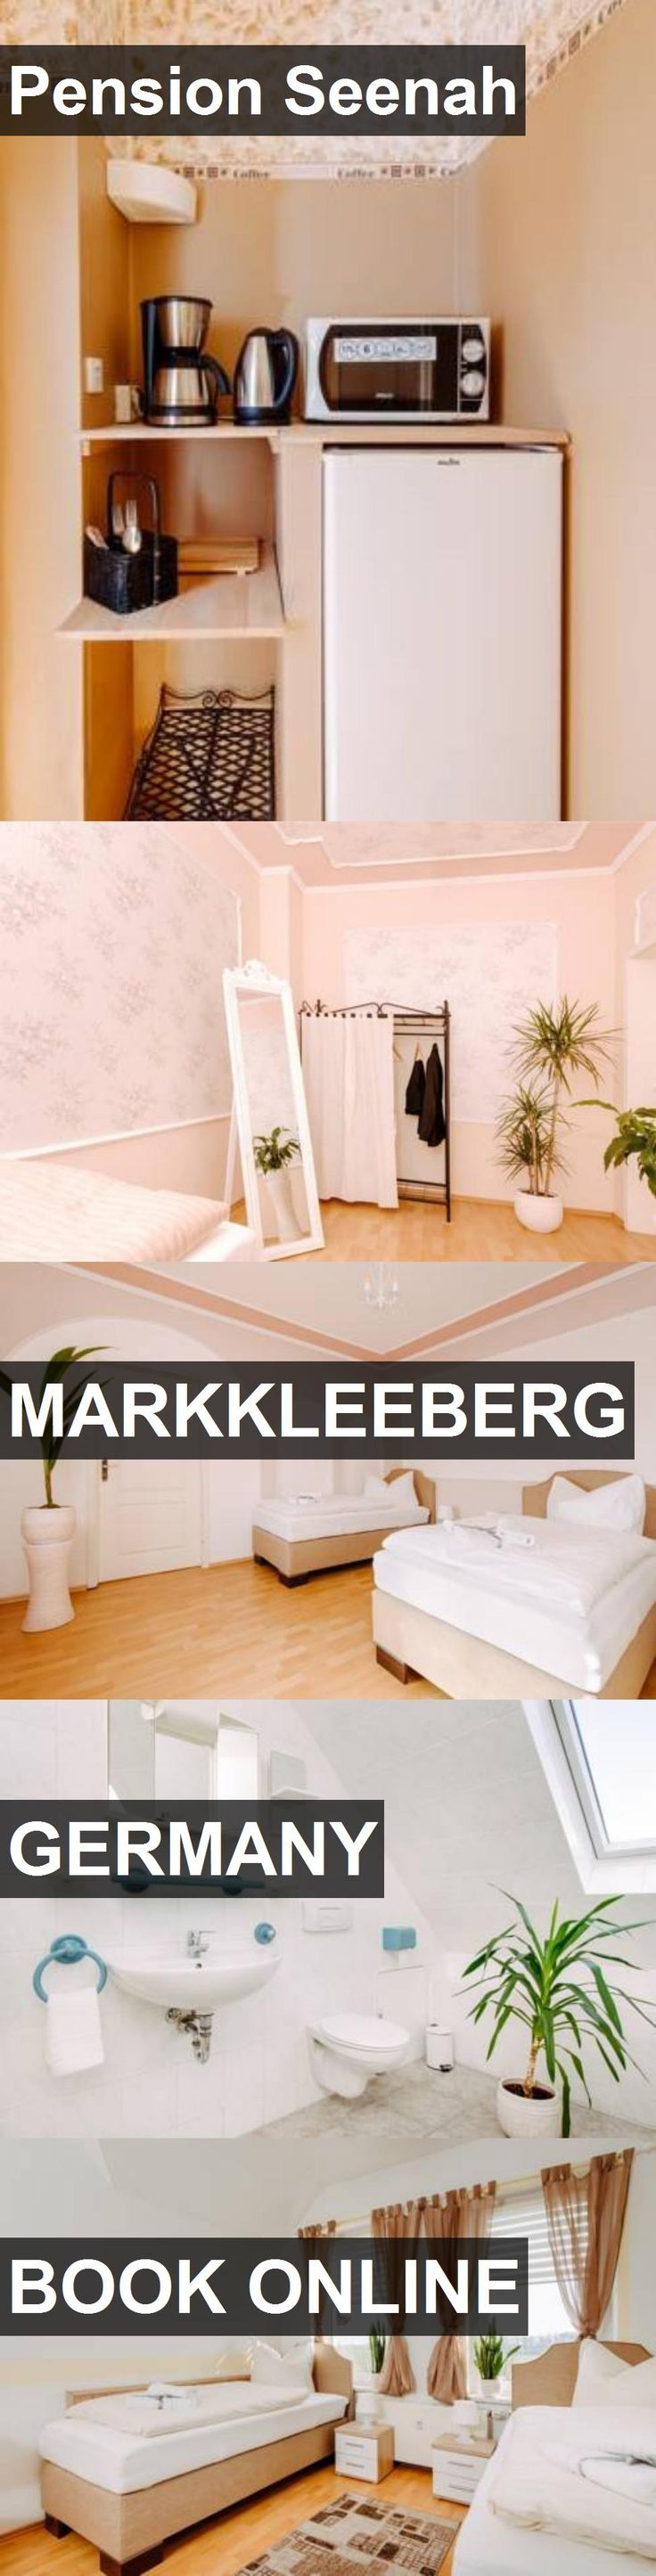 Hotel Pension Seenah in Markkleeberg, Germany. For more information, photos, reviews and best prices please follow the link. #Germany #Markkleeberg #travel #vacation #hotel